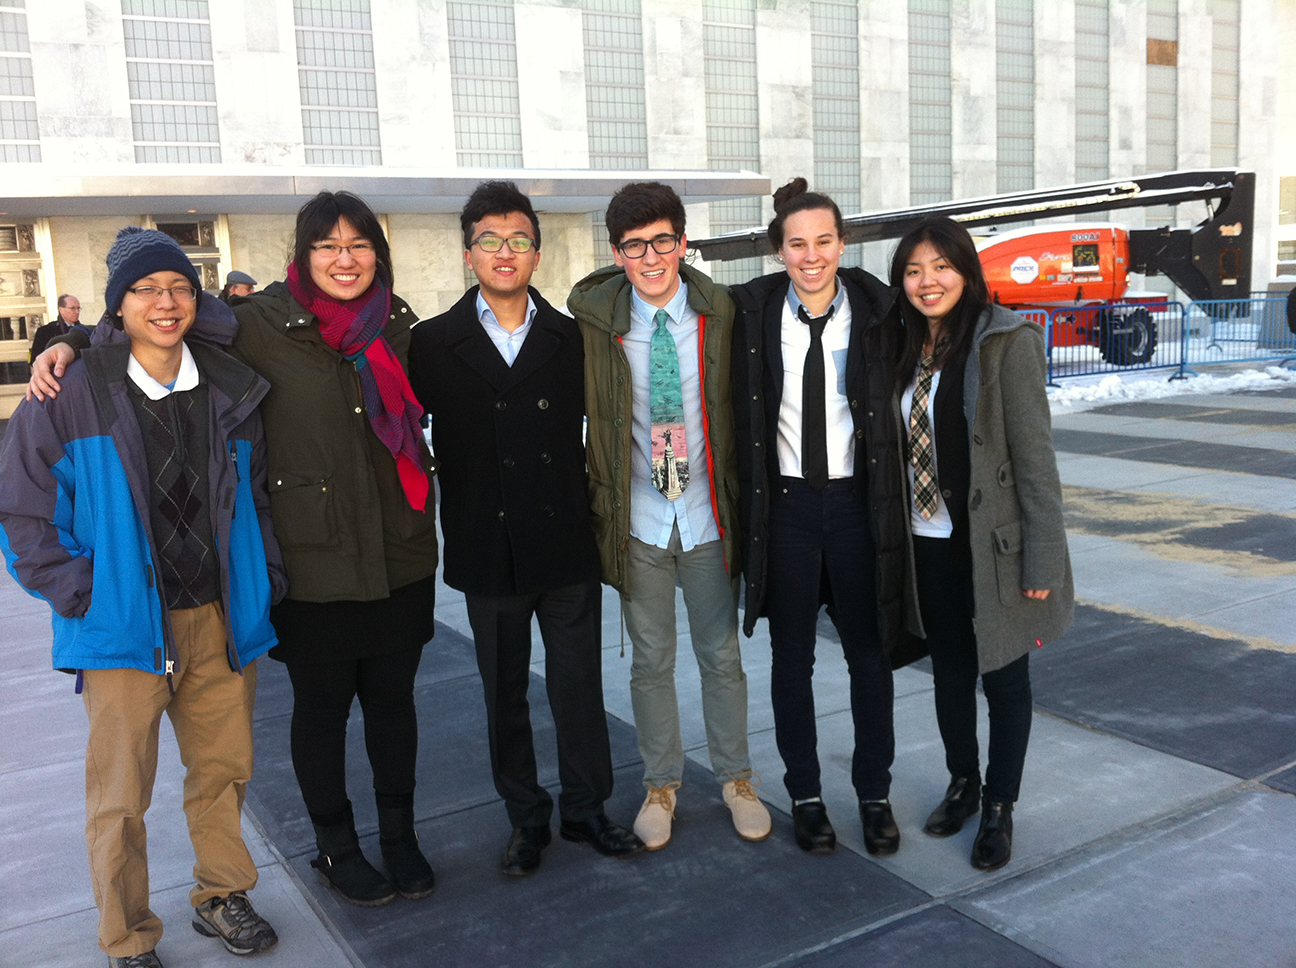 Sterling Xie '16, Jessica Tang '16, Sitong Chen '16, Bennett Glace '16, Phoebe Greenwald '16 and Holly Chen '16.